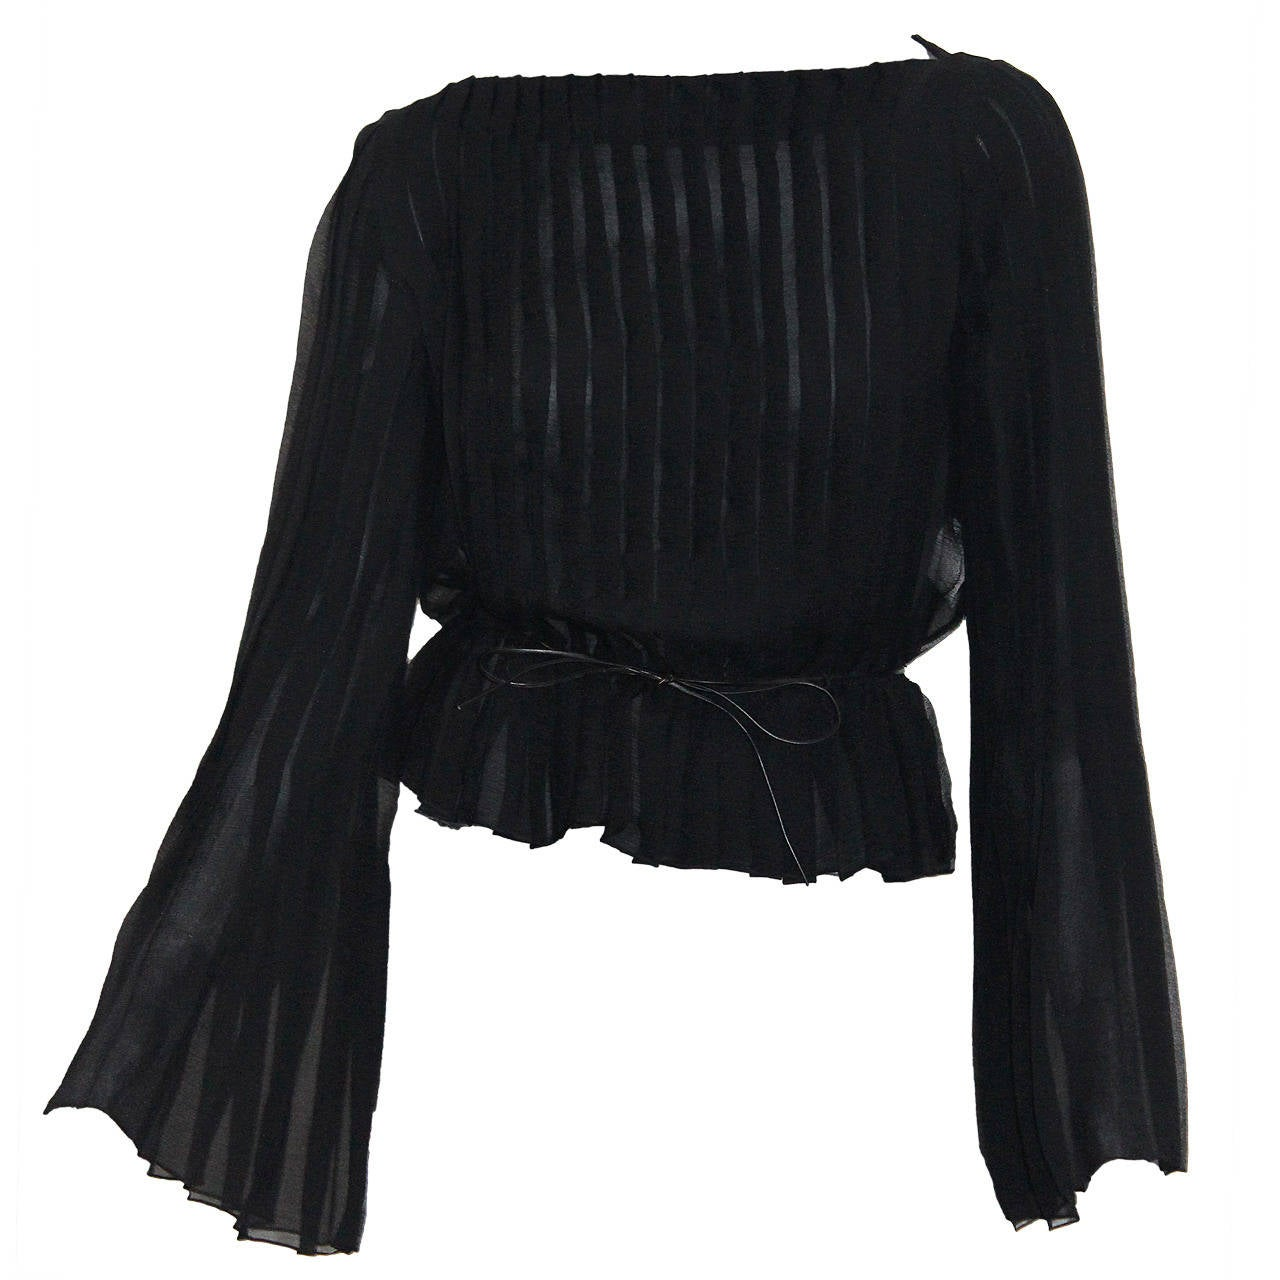 Tom Ford for Gucci Pleated Silk Chiffon Blouse For Sale